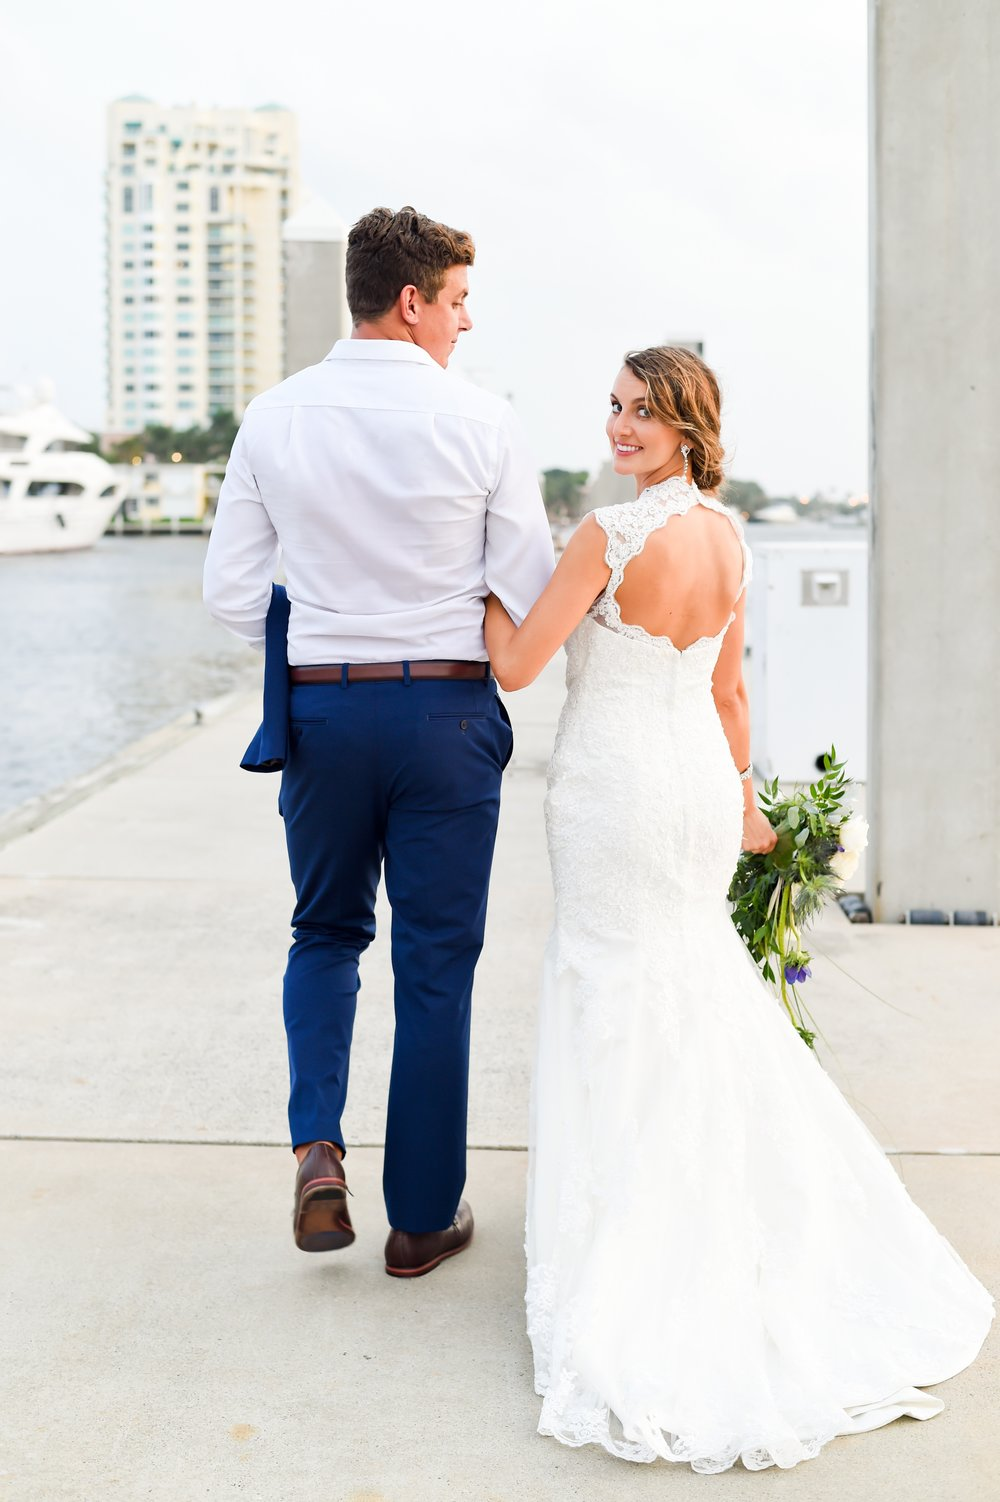 Erin & Nick  A classic, nautical wedding at Fort Lauderdale's largest super yacht marina: Bahia Mar.